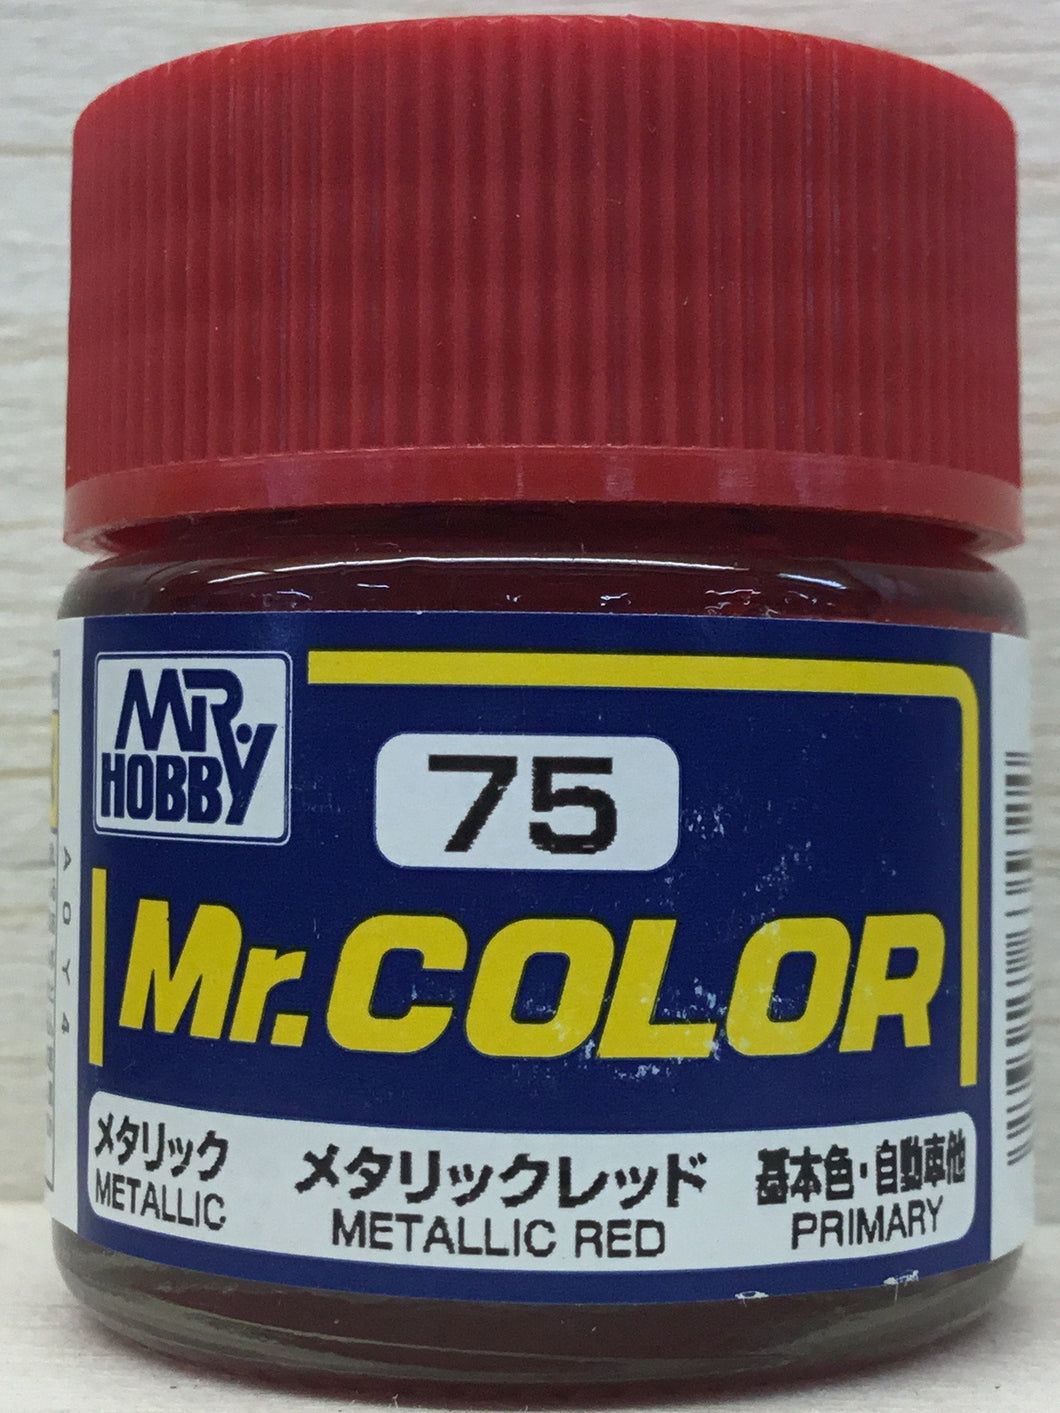 GUNZE MR COLOR C75 METALLIC RED